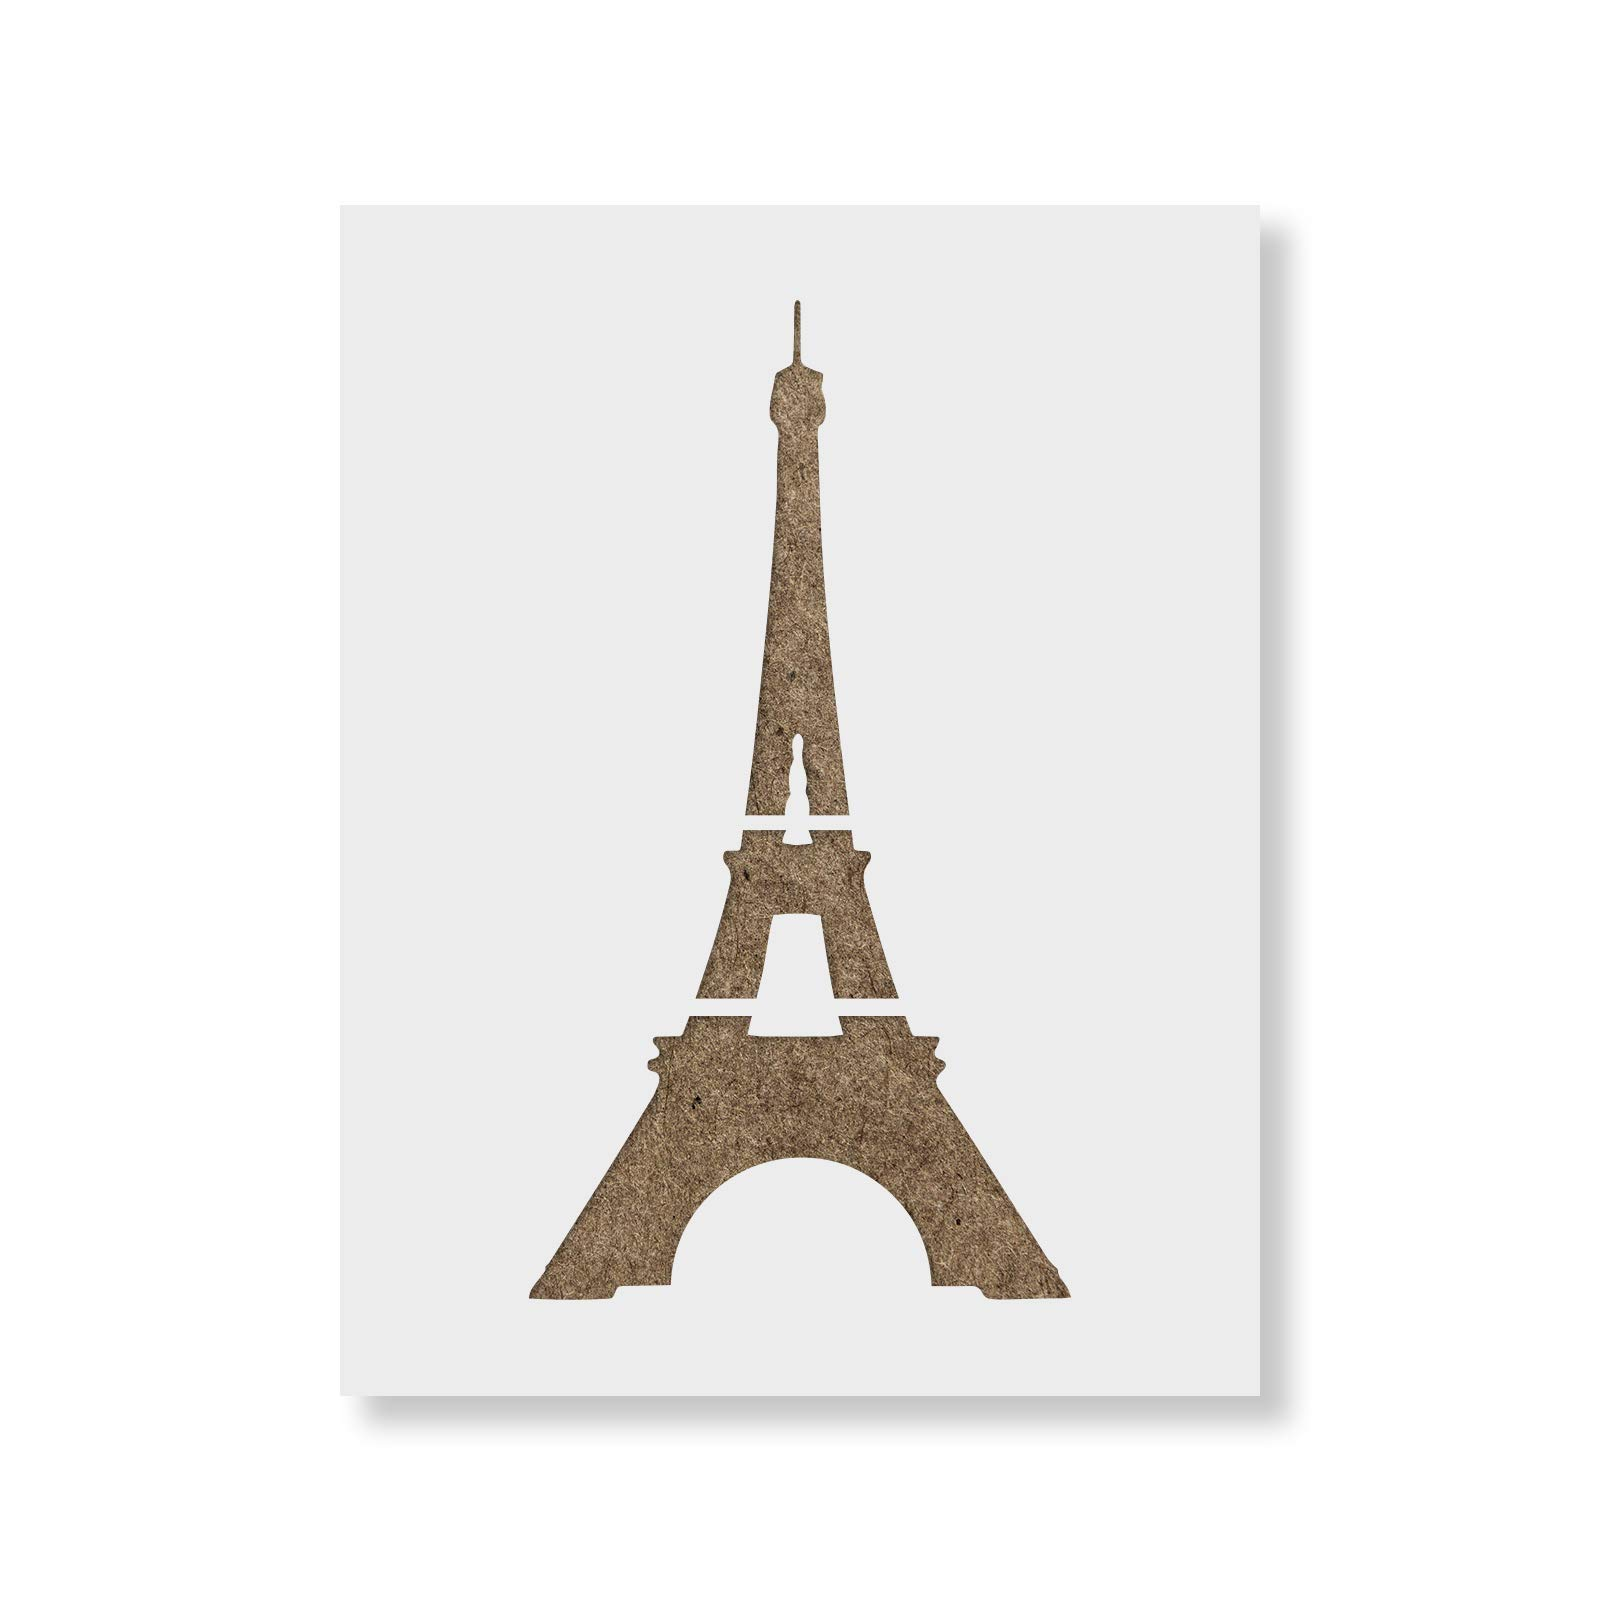 Eiffel Tower Stencil Template - Reusable Stencil with Multiple Sizes Available